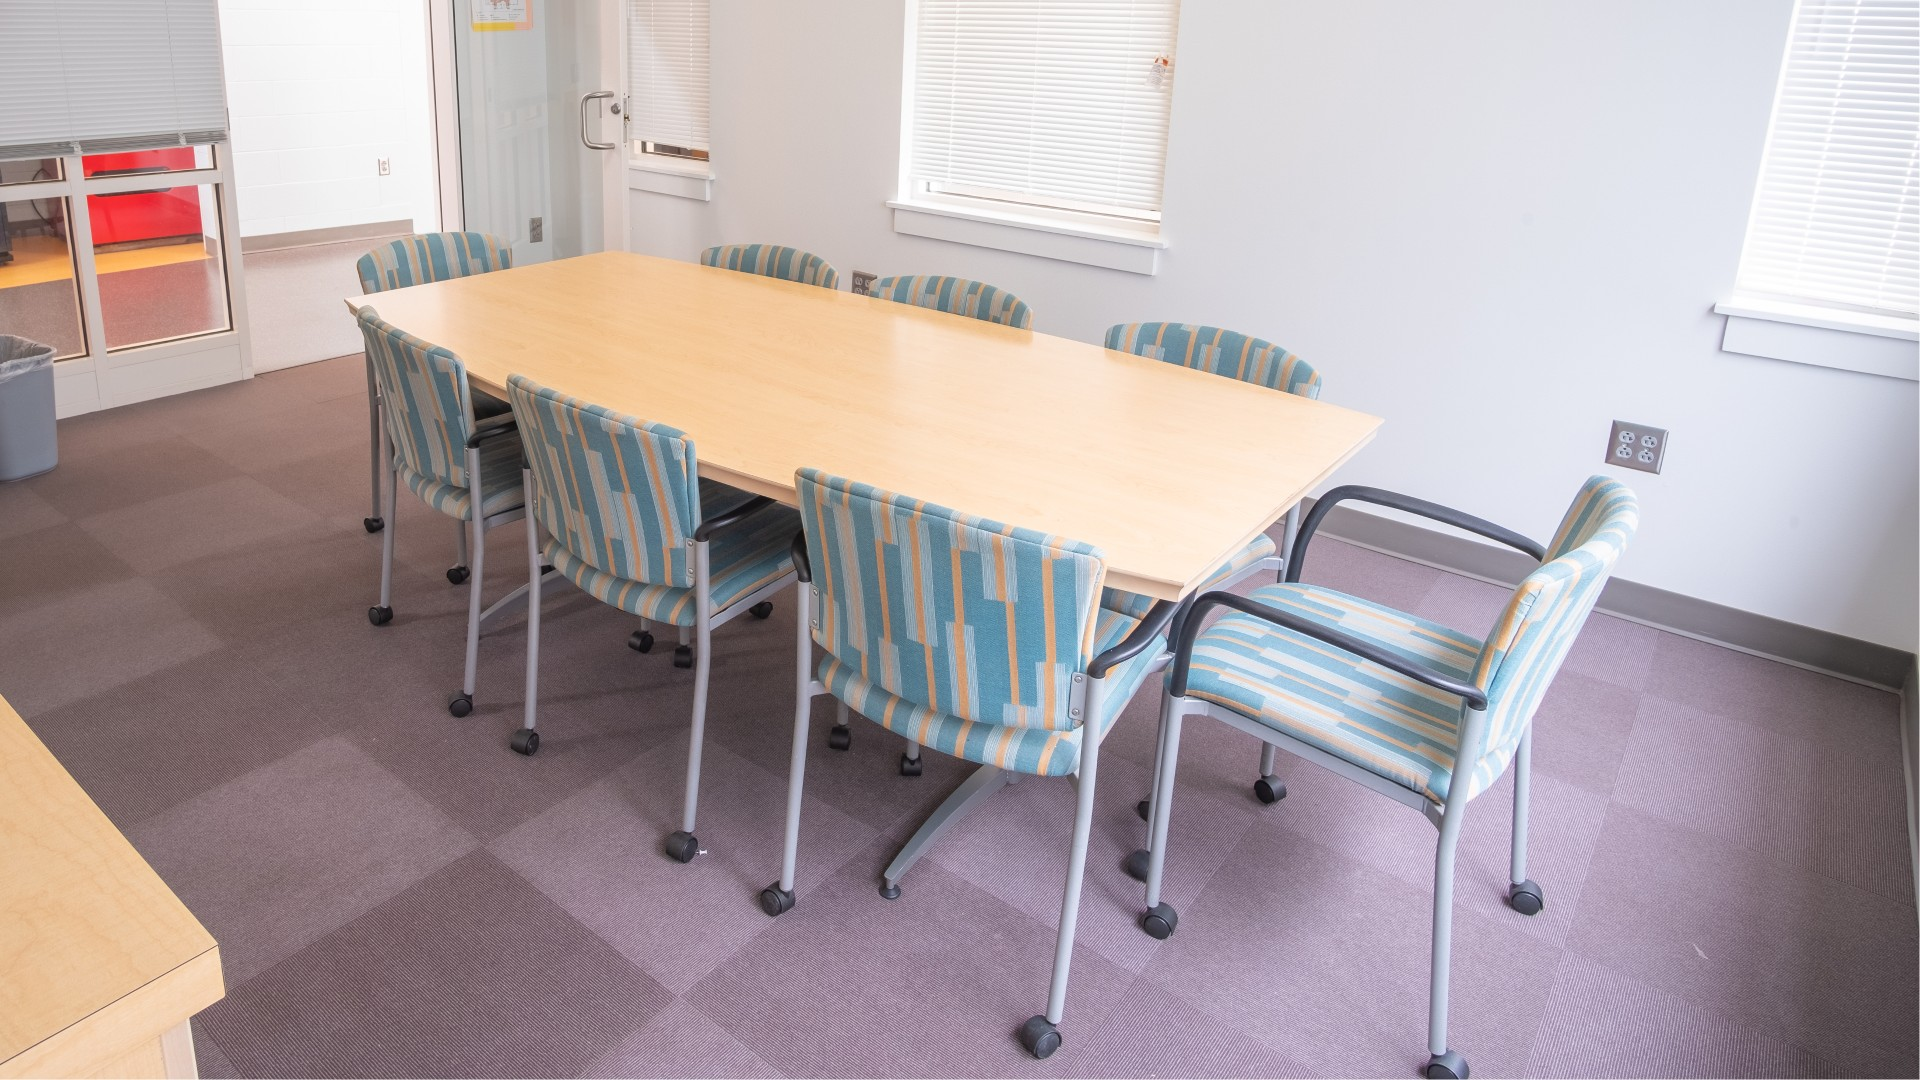 A conference room with a large table and eight chairs